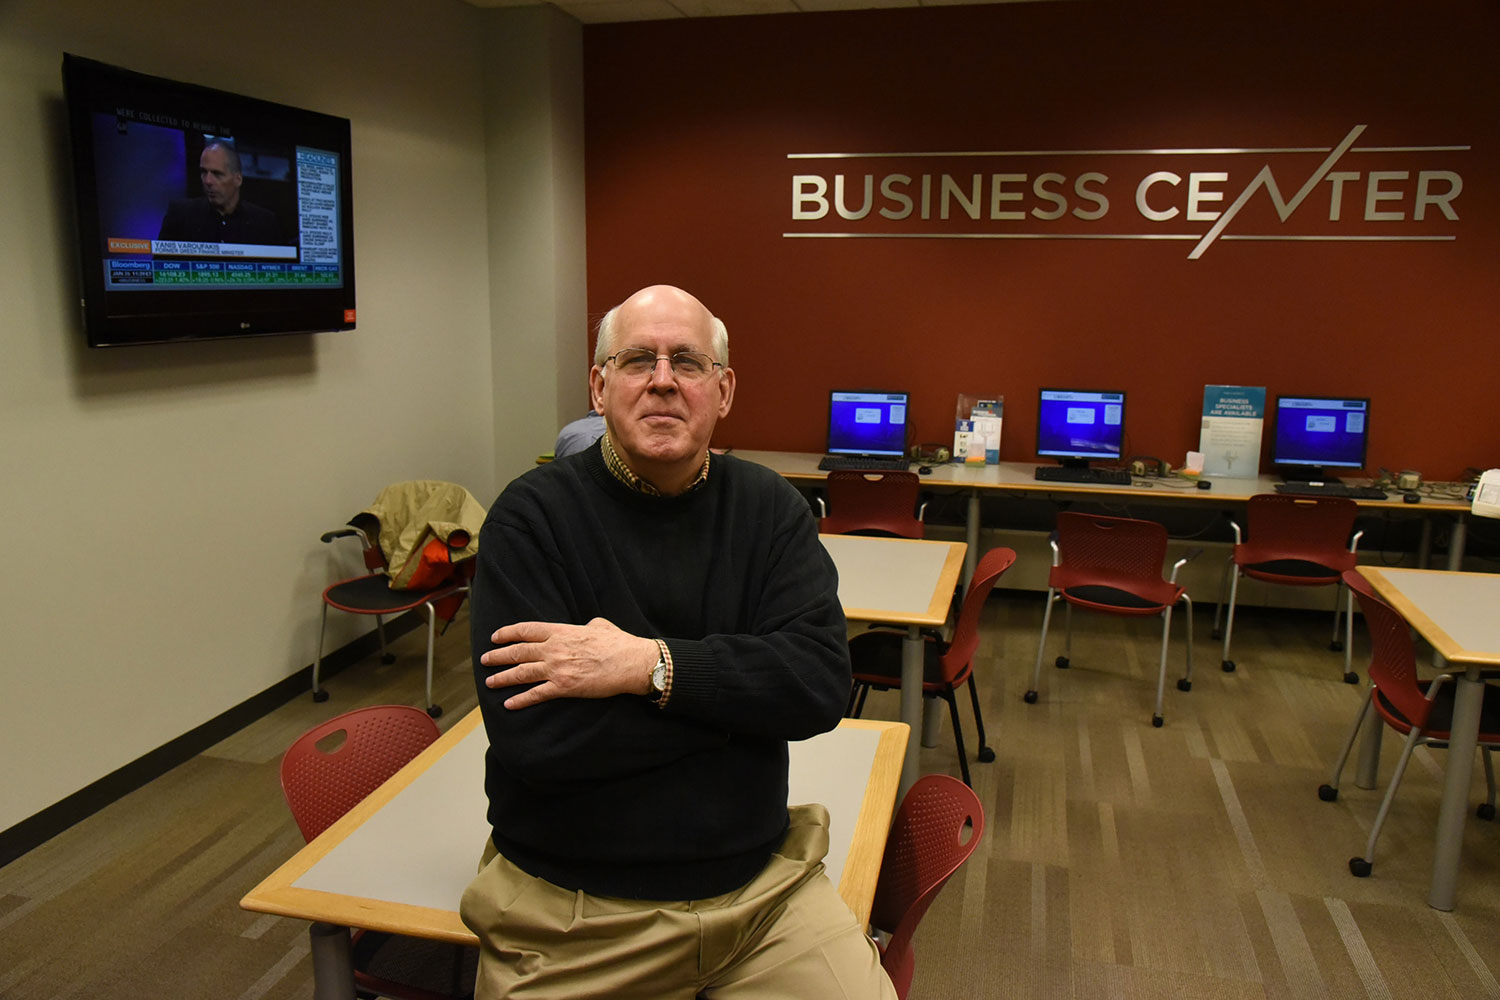 Jeff Williams, a 1970 graduate of UVA's McIntire School of Commerce, has devoted his career to helping Baby Boomers like himself launch successful startups.